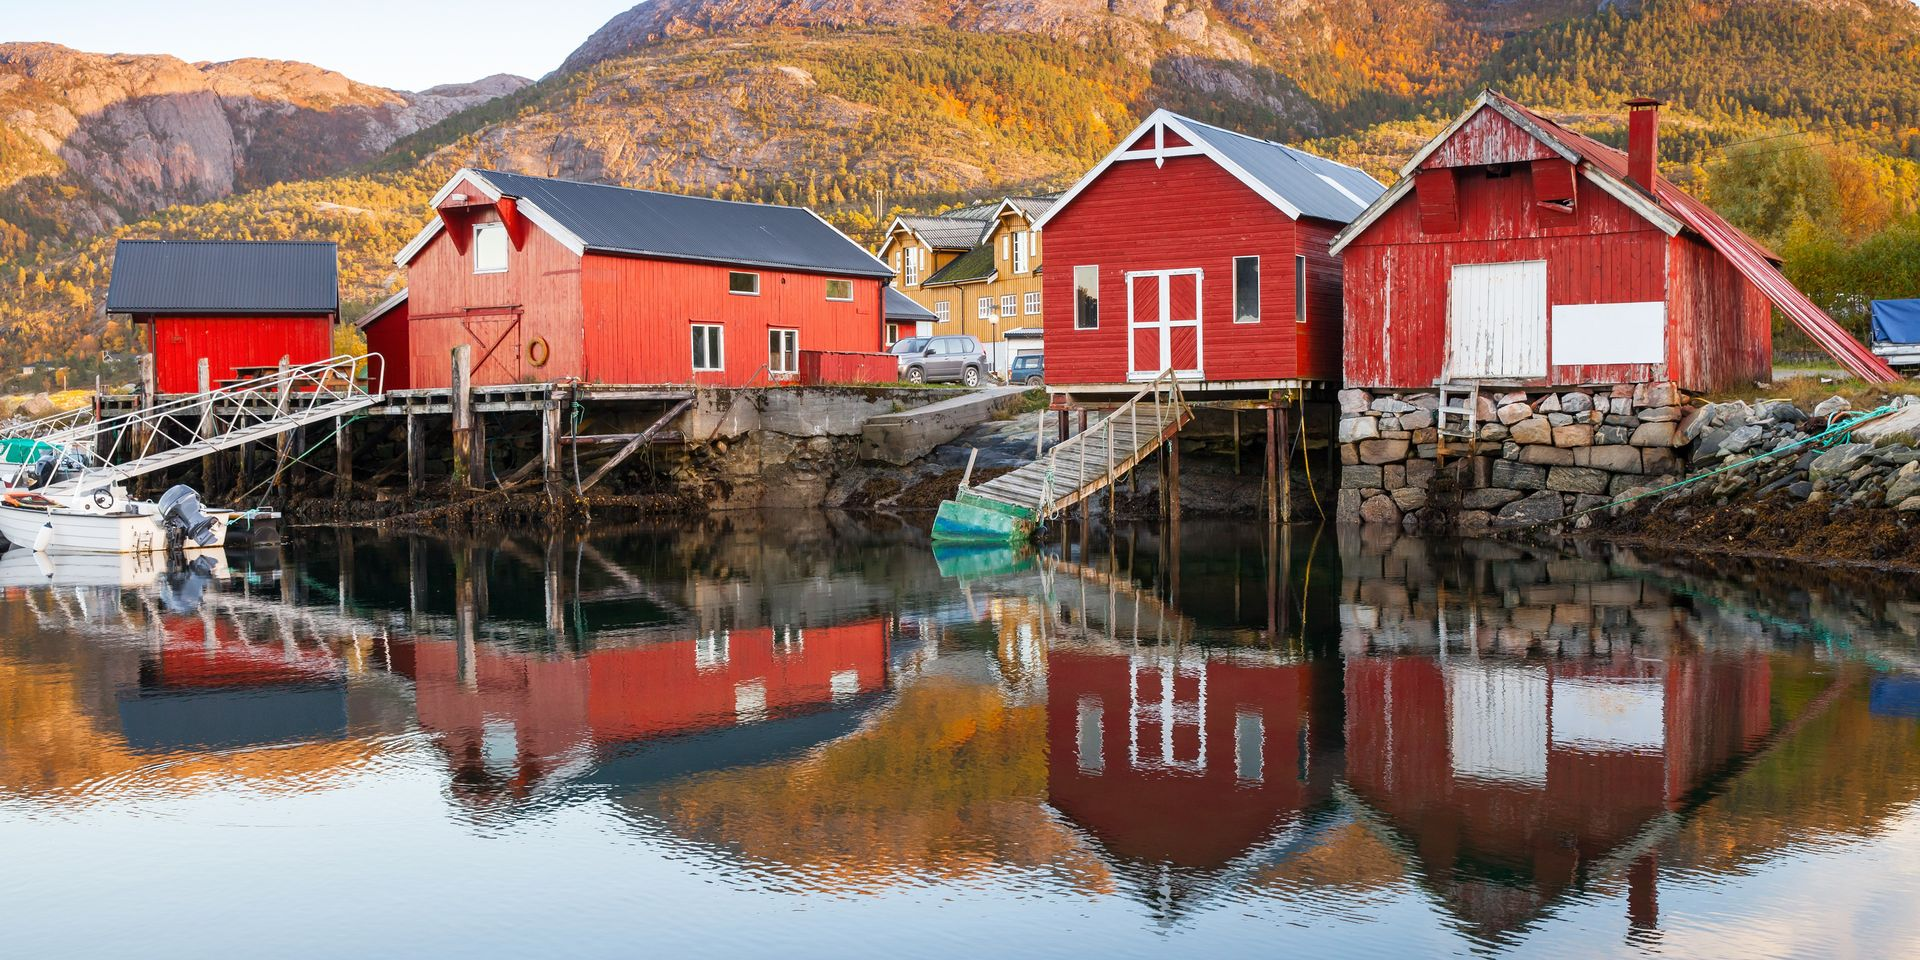 Traditional,Norwegian,Red,Wooden,Barns,Stand,On,The,Sea,Coast.